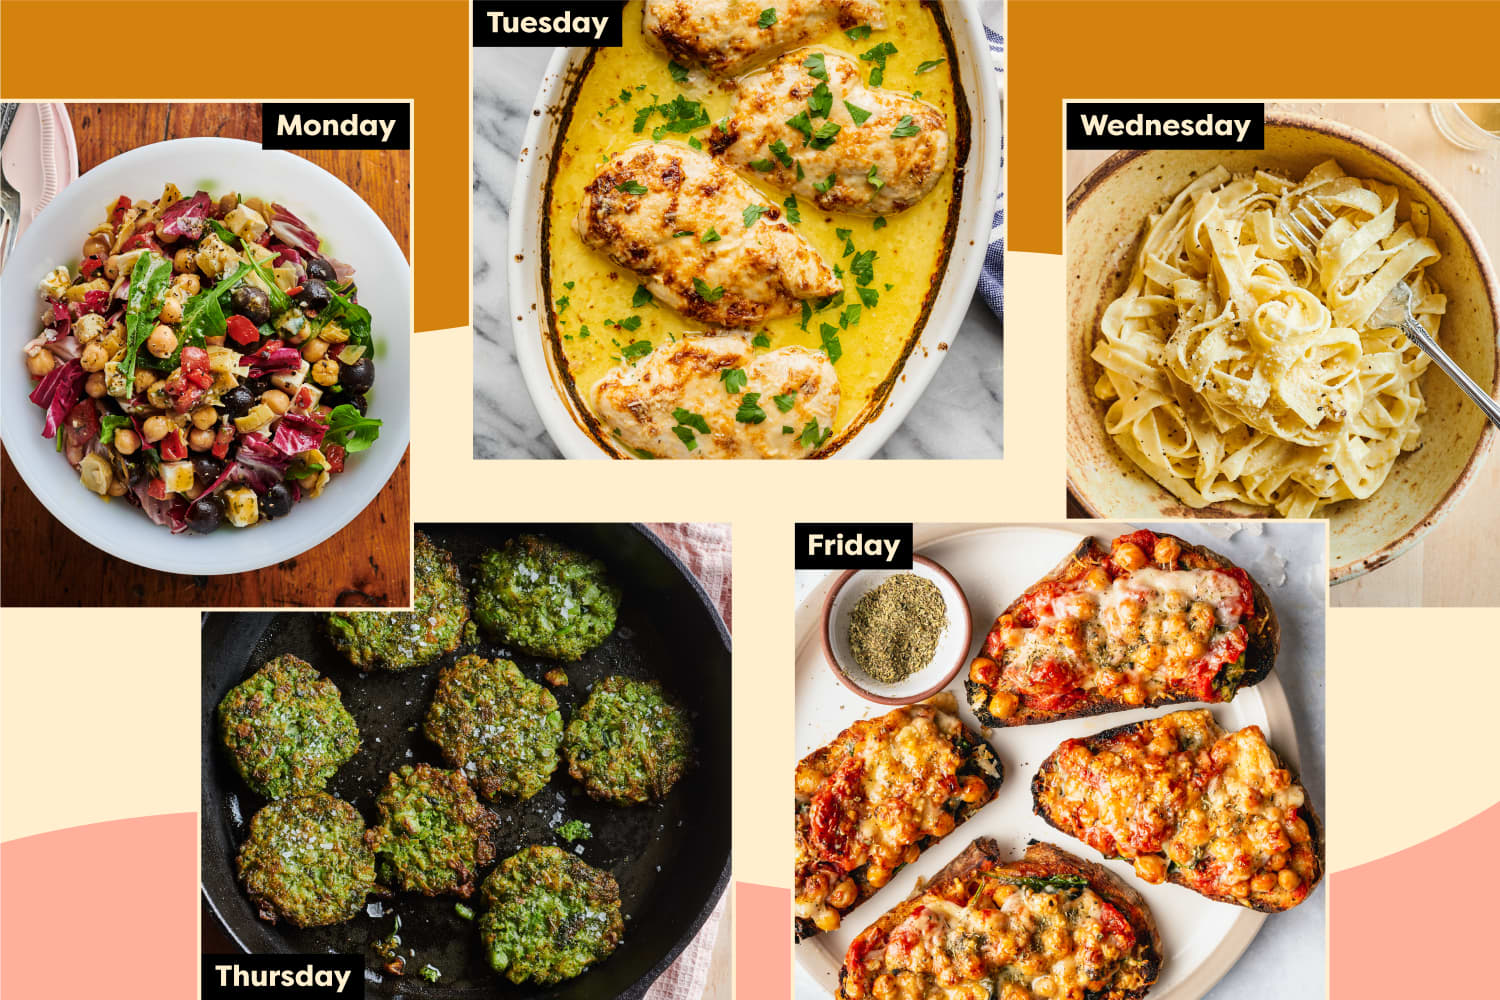 A Week of Simple Pantry Dinners to Make with What You Have